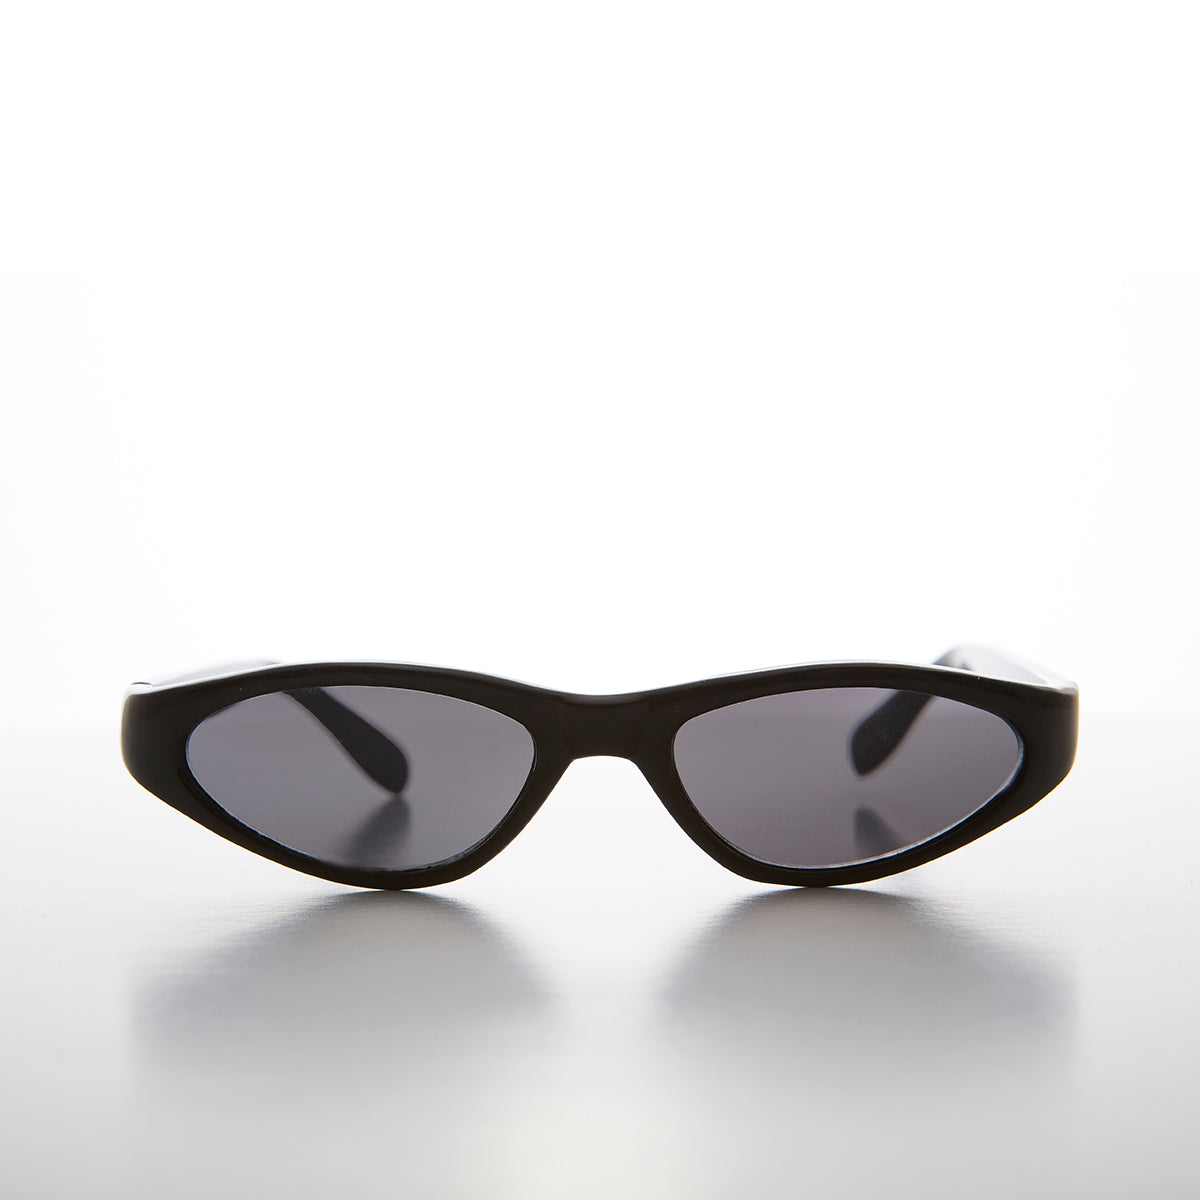 Edgy Small Cat Eye 90s Vintage Sunglass